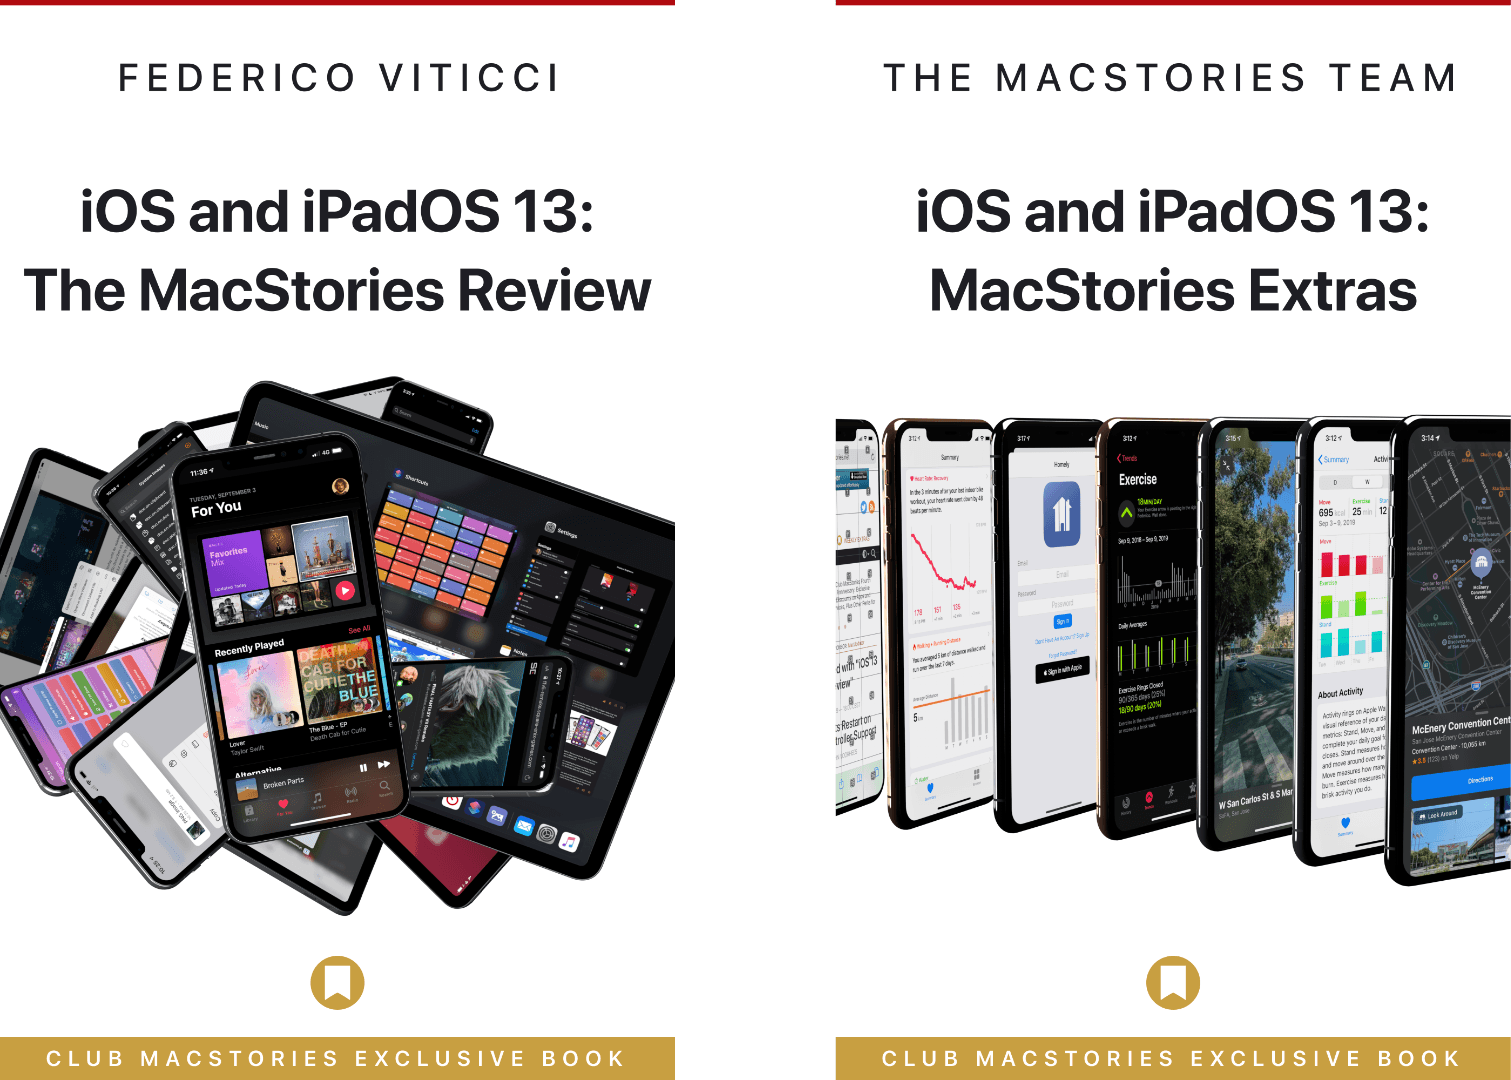 iOS and iPadOS 13 Review Extras: eBooks, Wallpapers, Shortcuts, Podcasts, and Making Of